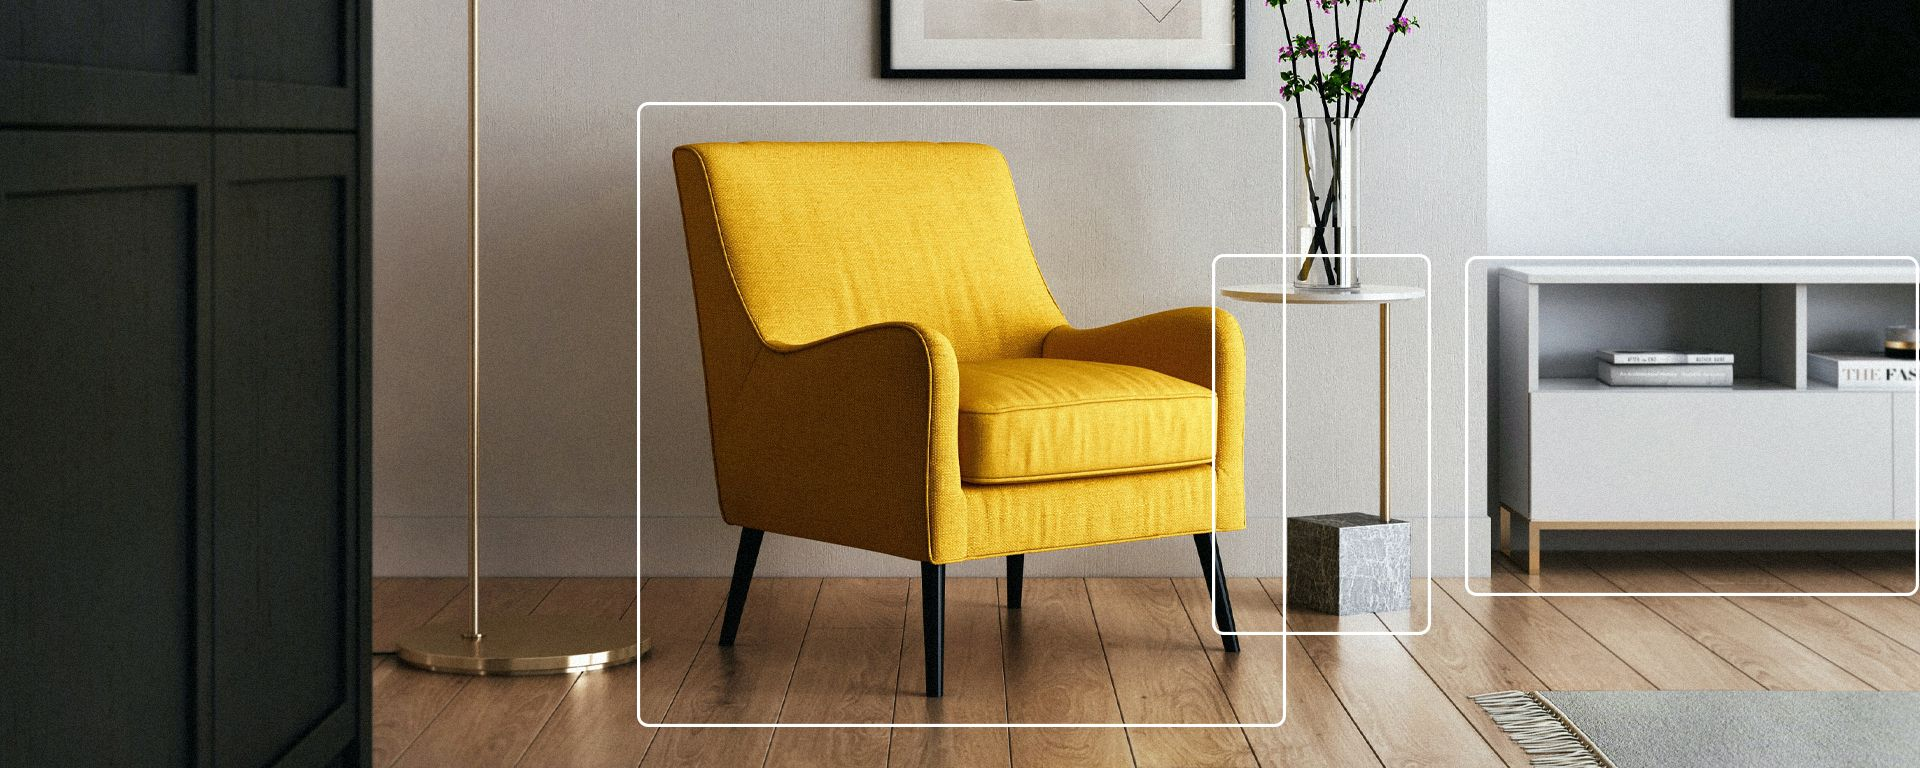 Using Augmented Reality in Interior & Property Design: How Did We Live Without It?